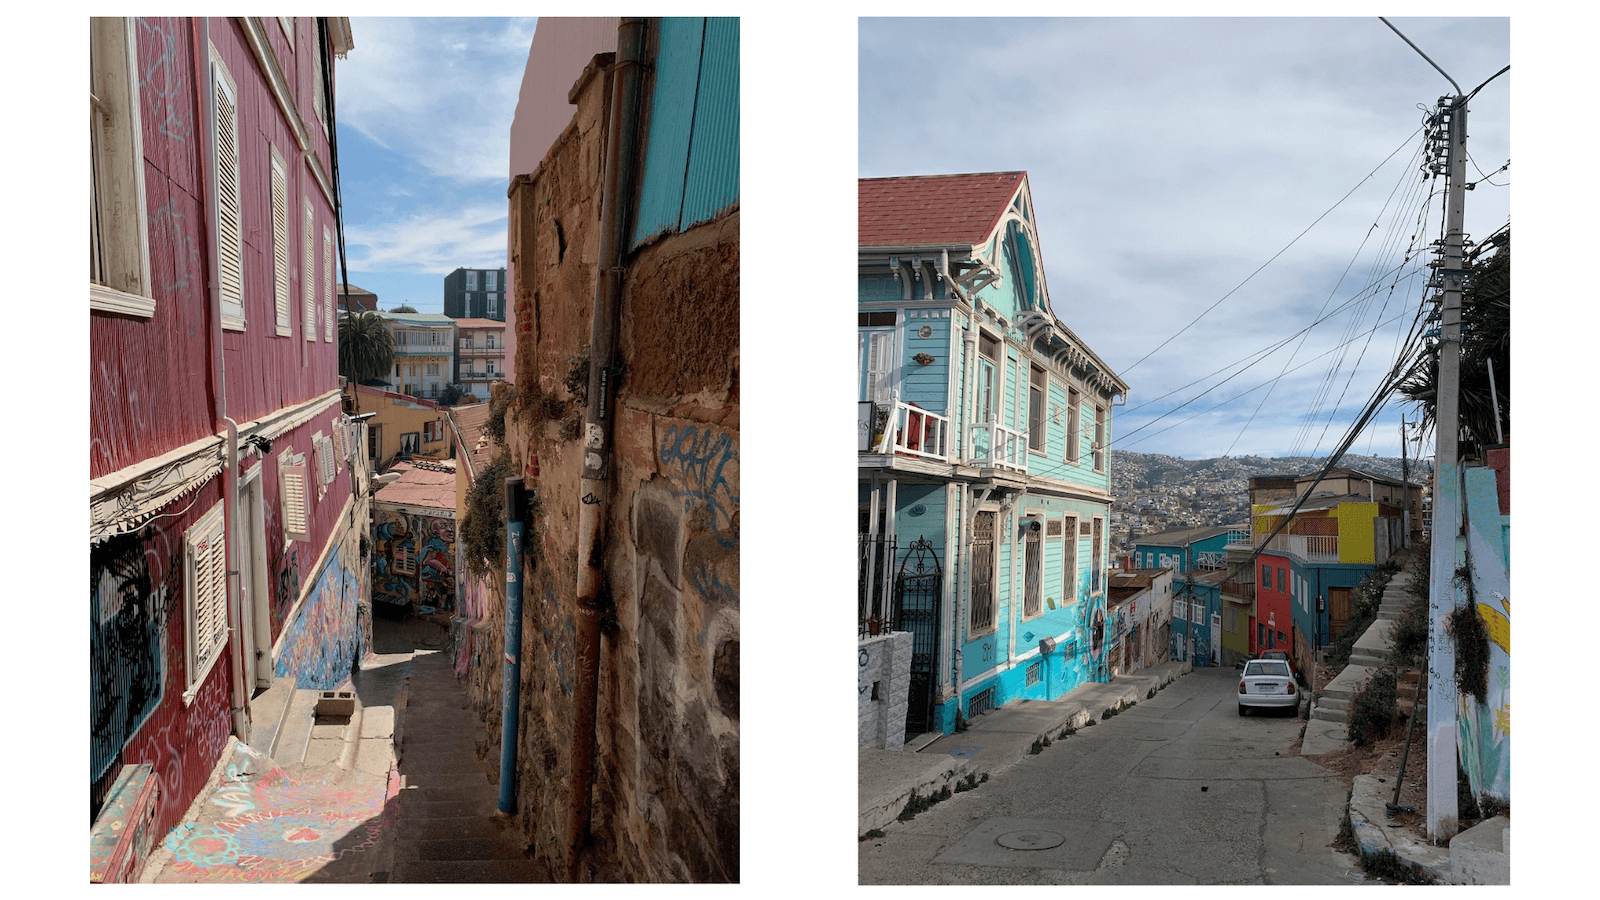 Colorful buildings of Valparaiso